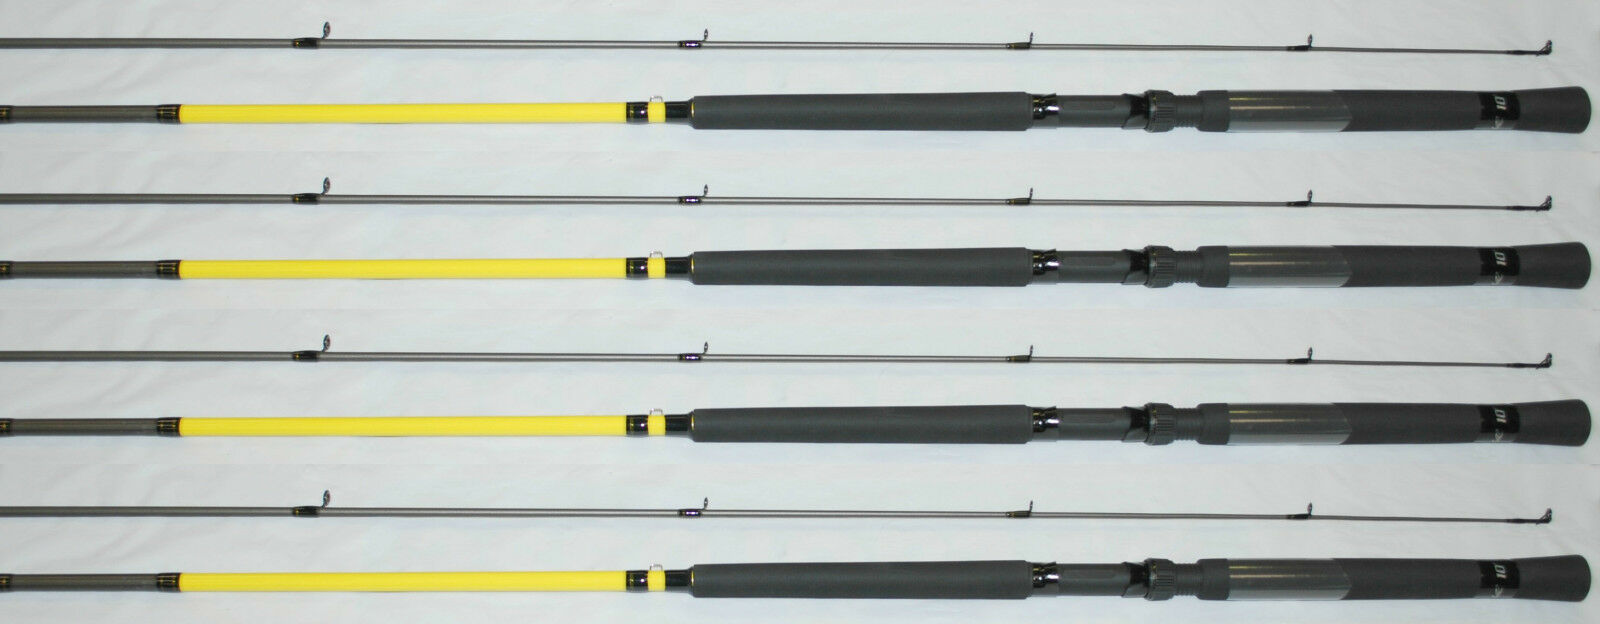 Lew's MR. CRAPPIE SLAB DADDY  FISHING POLES,   ROD 10' SD10L-2 (1 SET OF FOUR)  fashionable